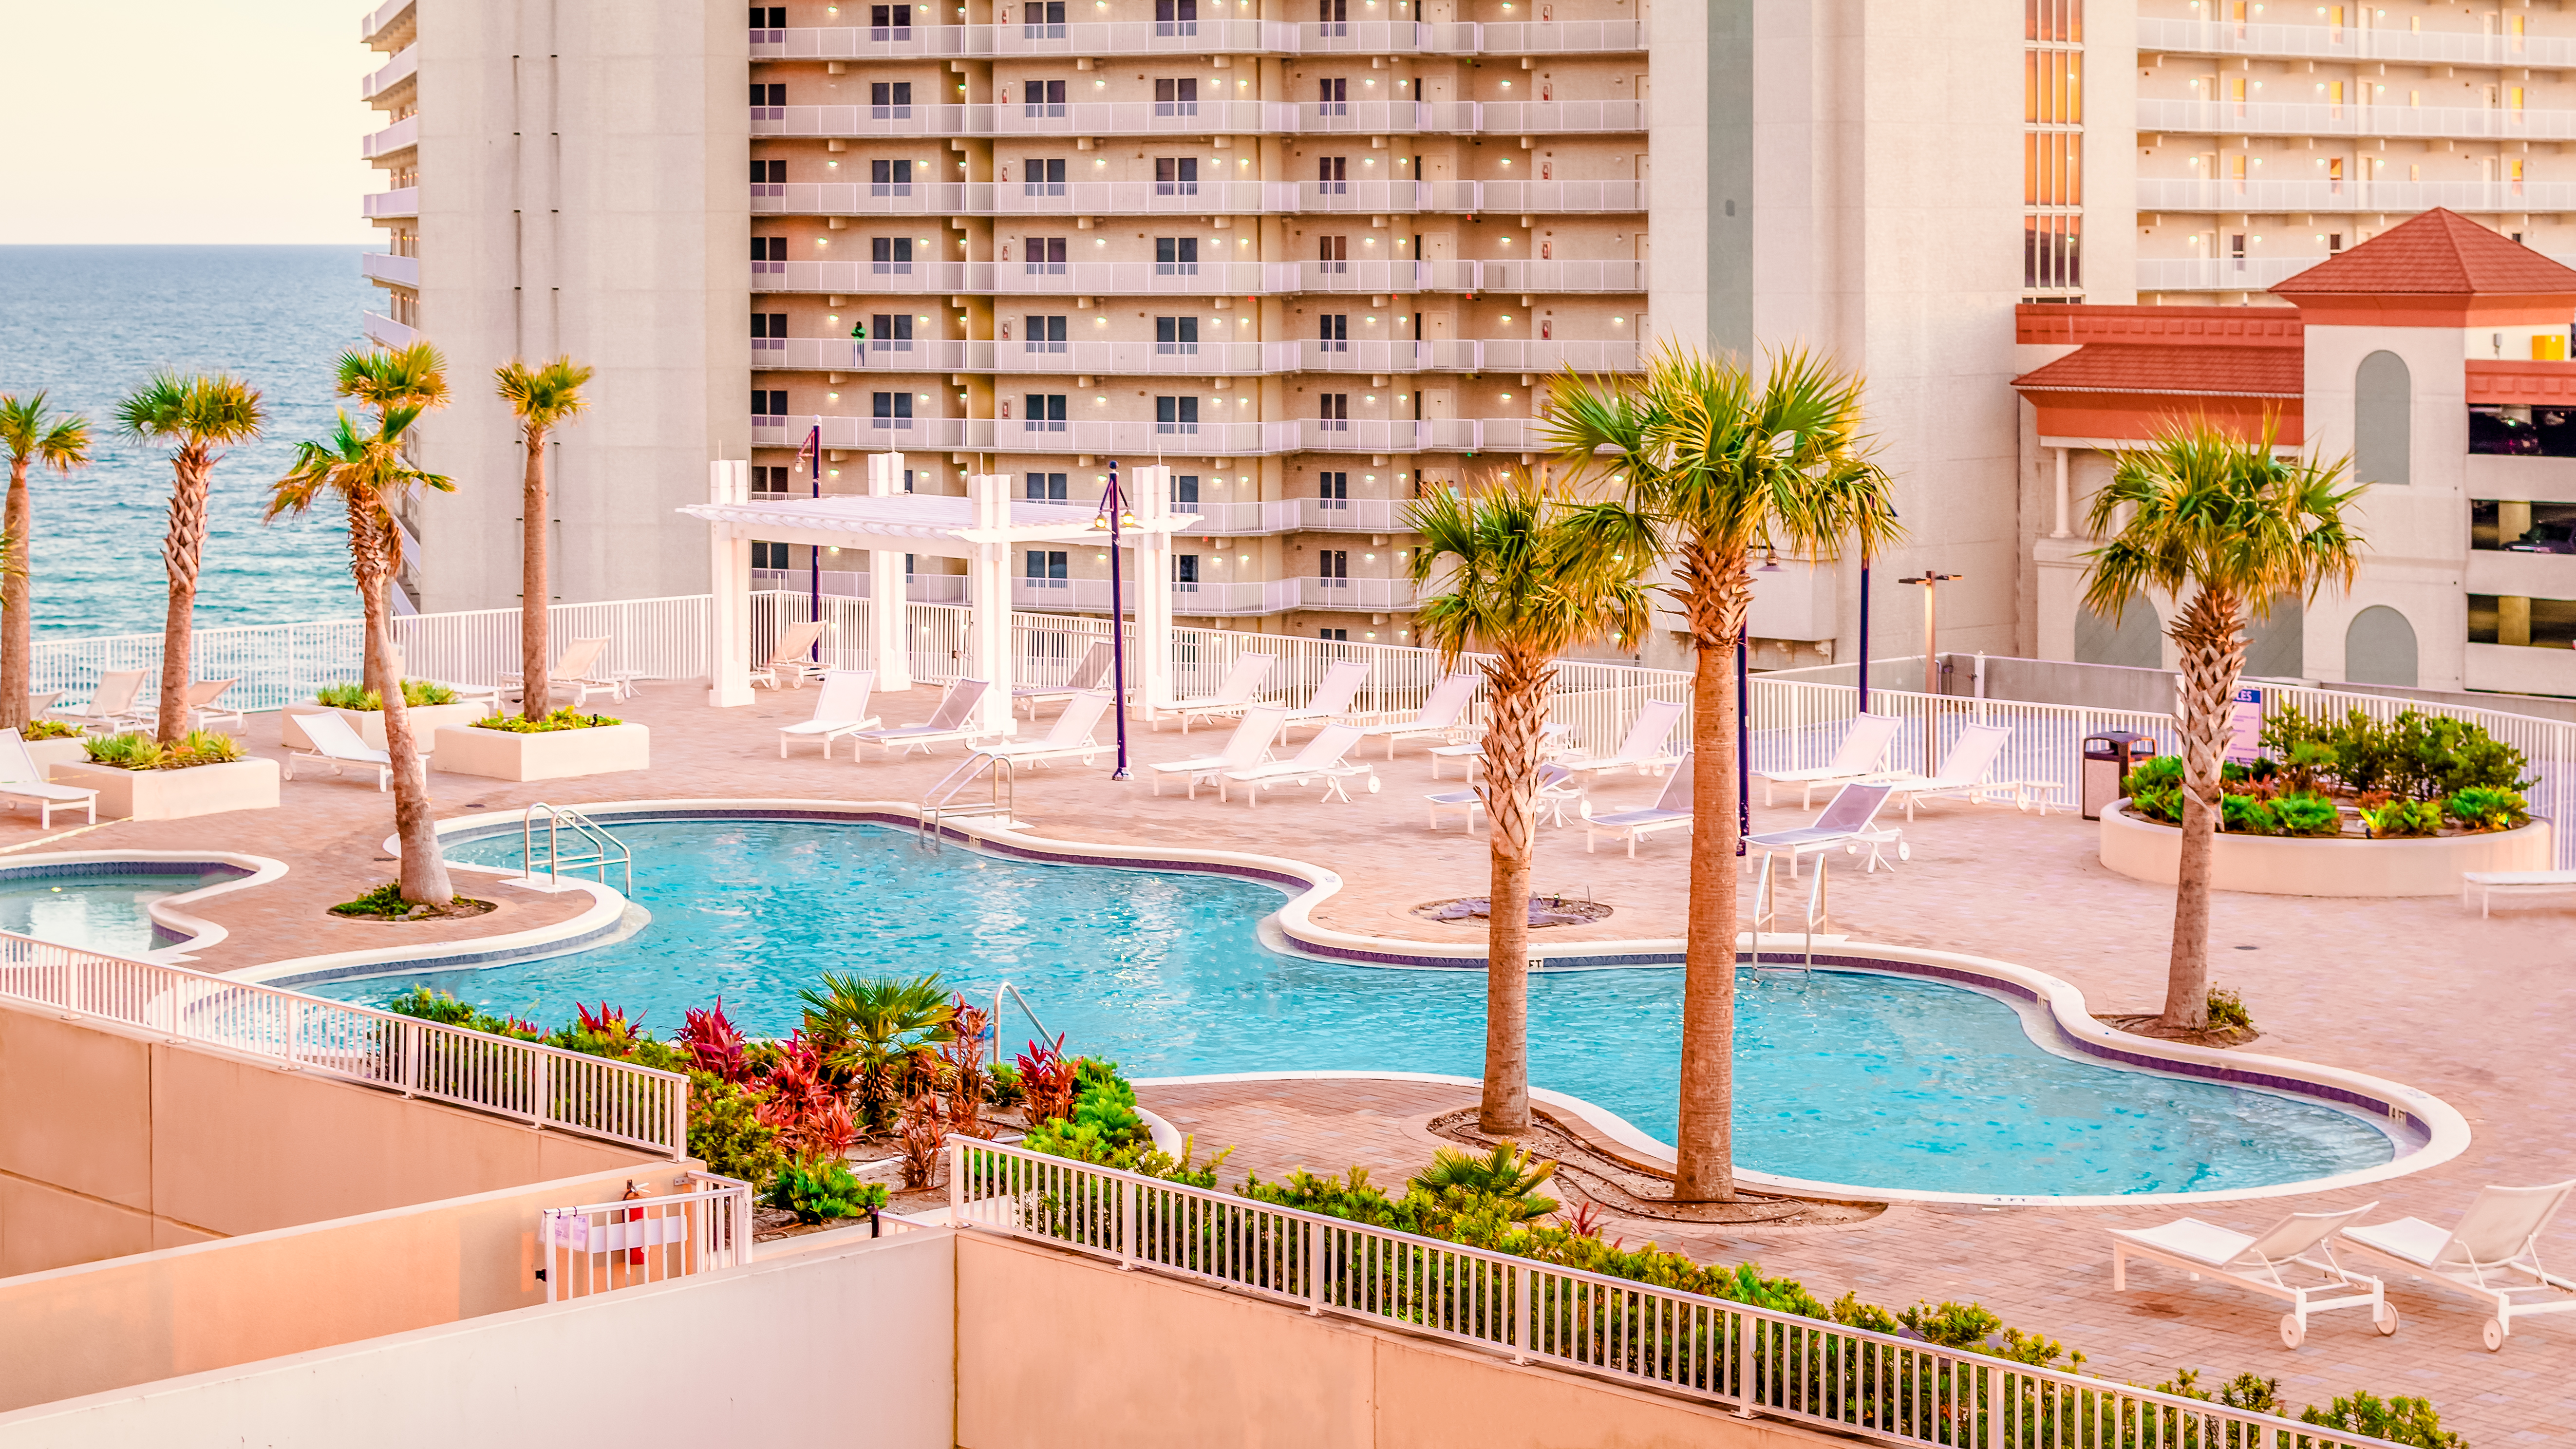 Rooftop Pool at The Laketown Wharf